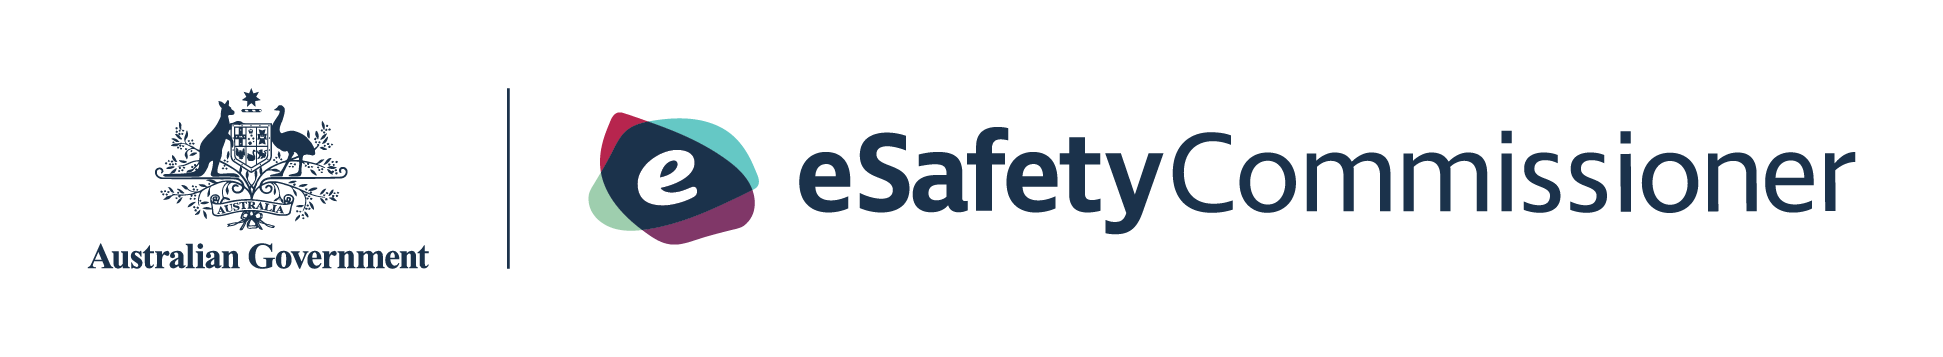 eSafety Commissioner logo-Main-inline